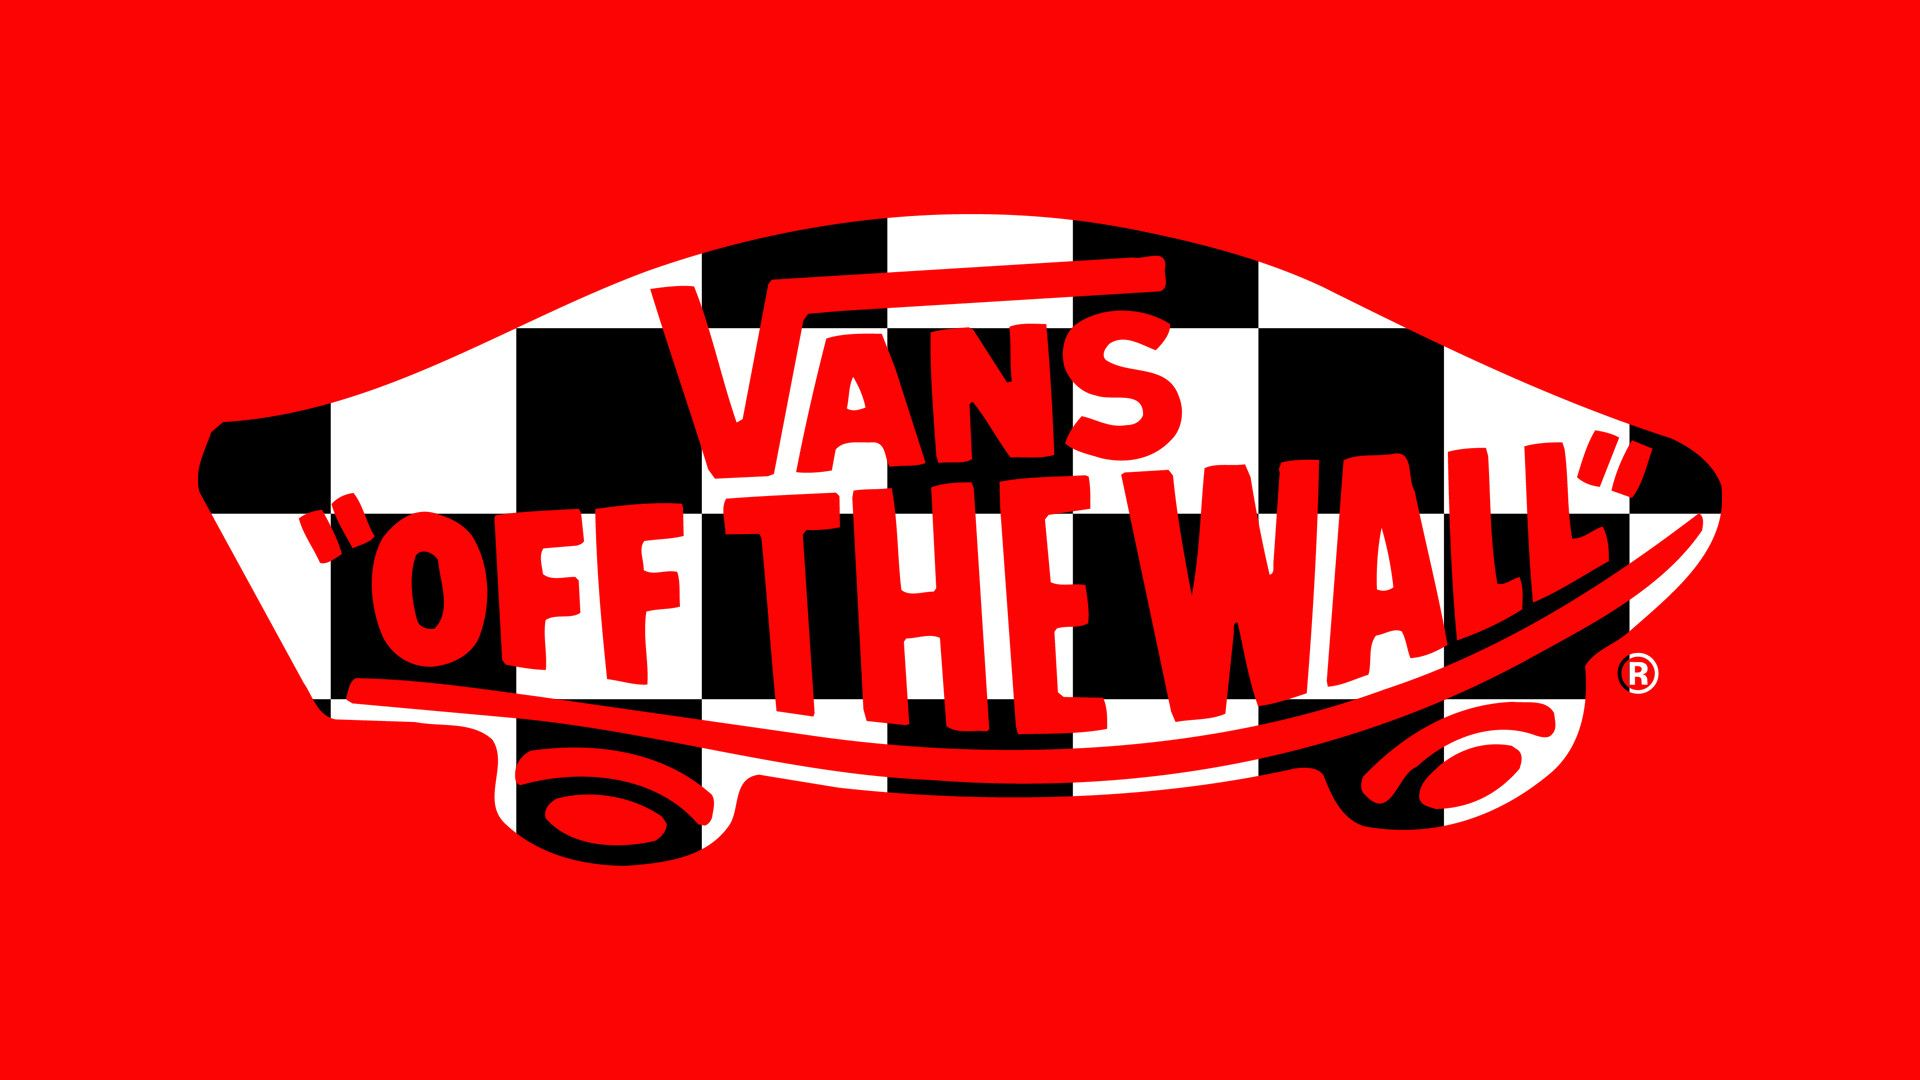 Vans Skateboard logos wallpapers on wallpaperplay - Free HD Wallpapers